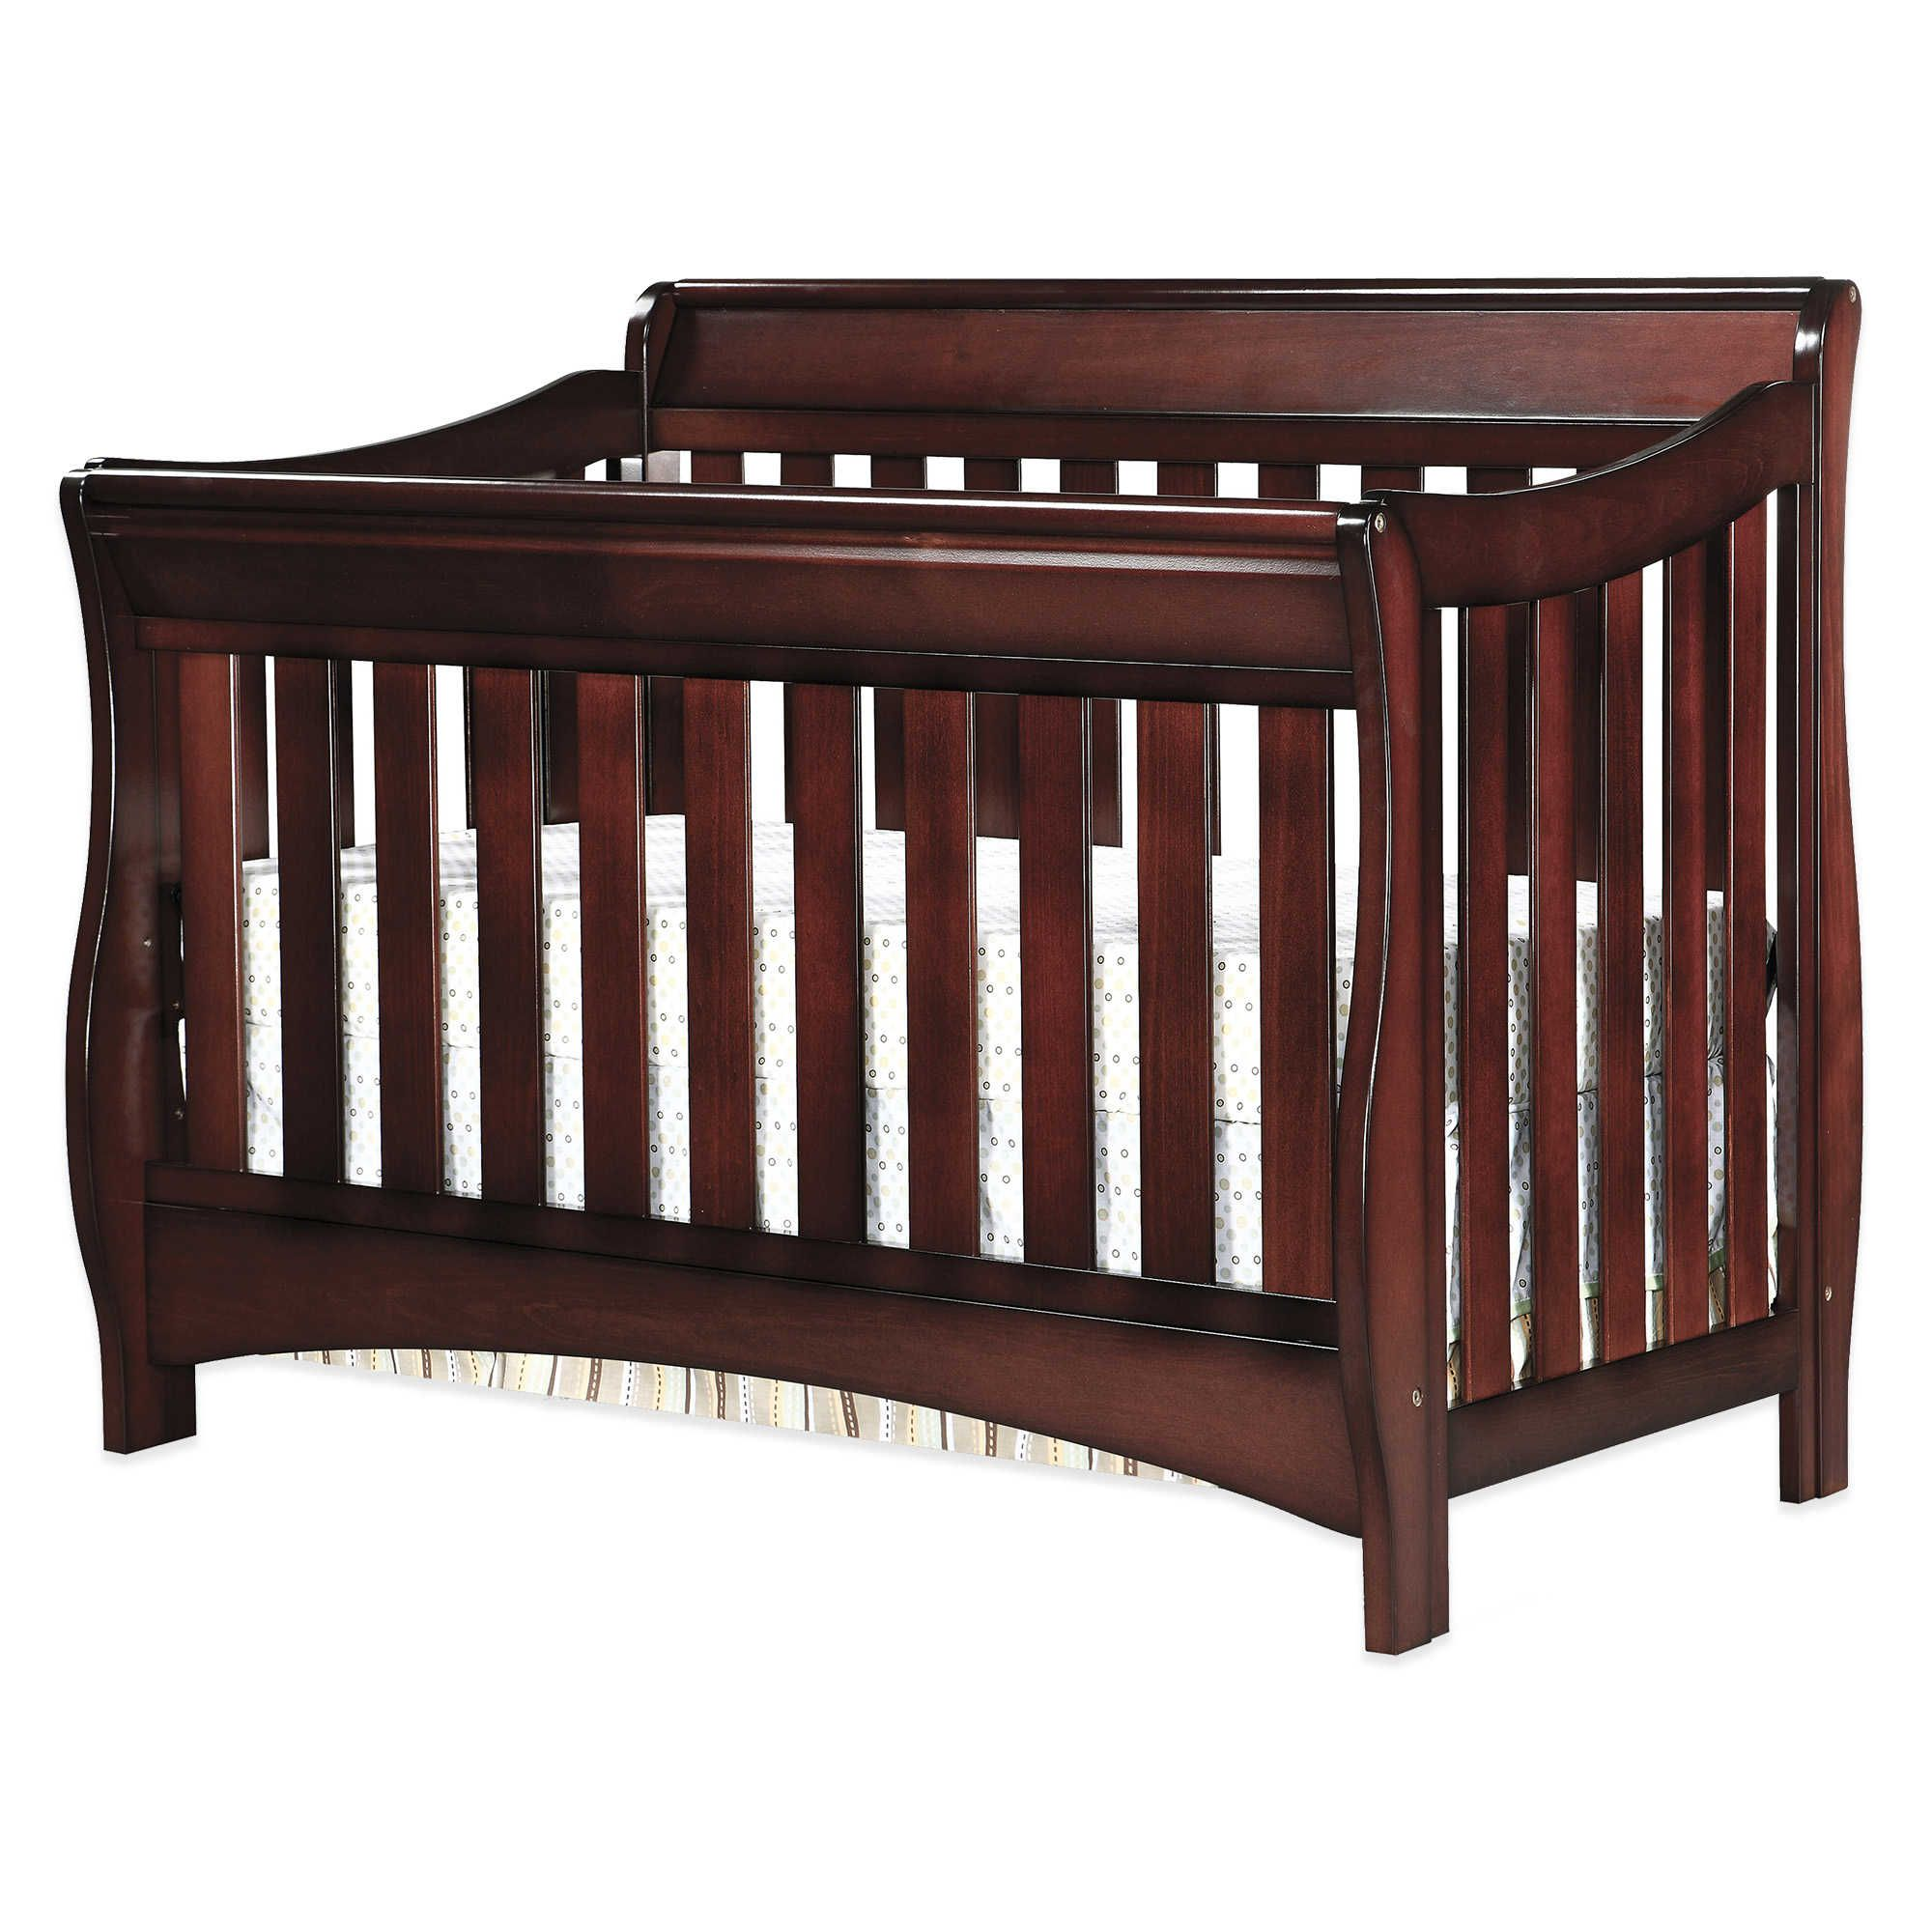 crib cribs cherry rail kids new bed sleigh toddler furniture safety itm bedroom